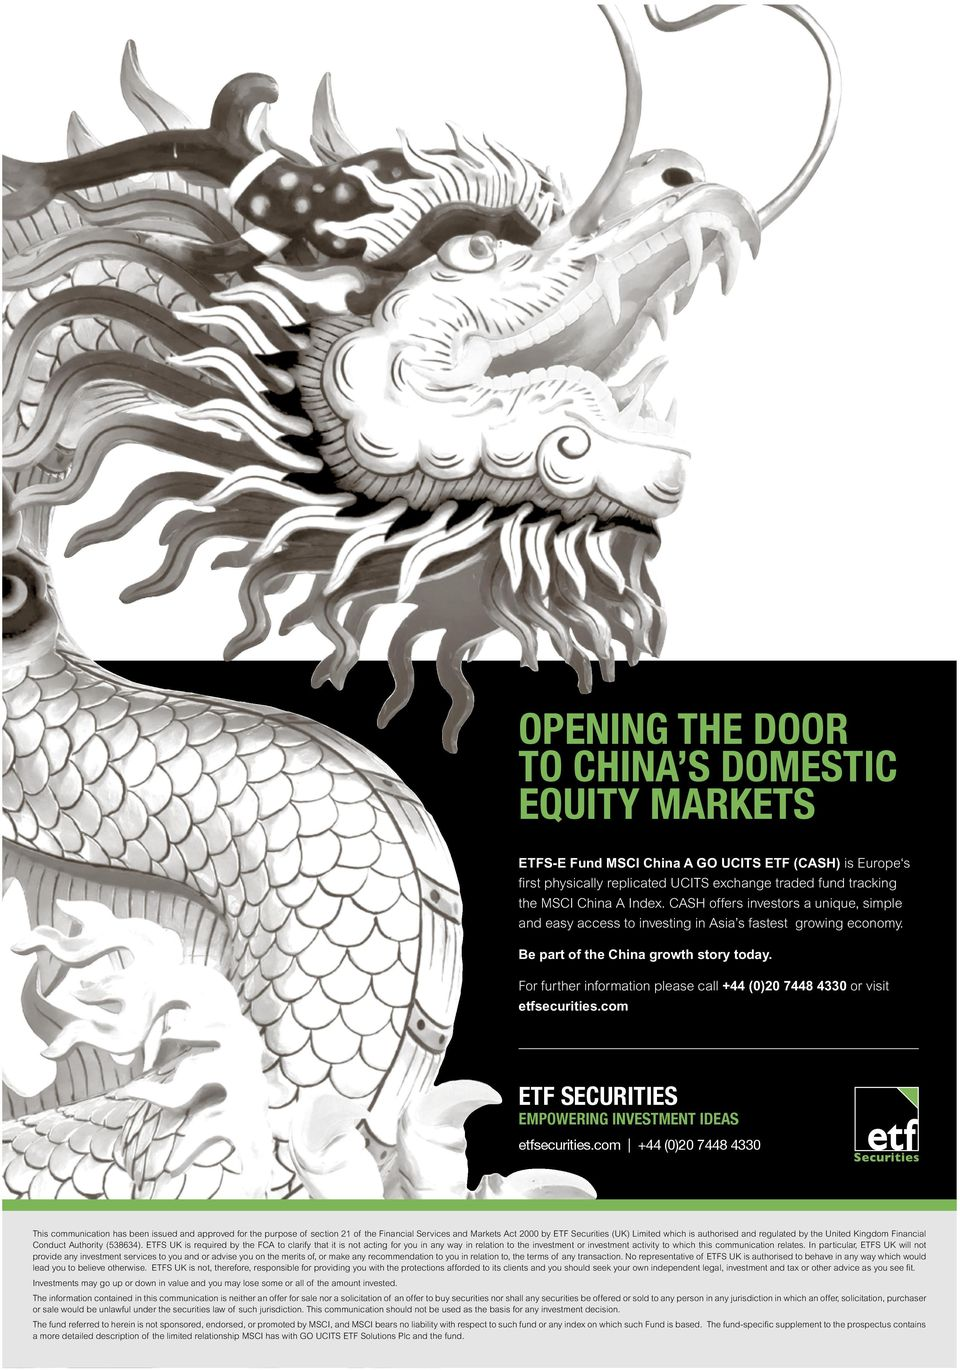 For further information please call +44 (0)20 7448 4330 or visit etfsecurities.com ETF SECURITIES EMPOWERING INVESTMENT IDEAS etfsecurities.